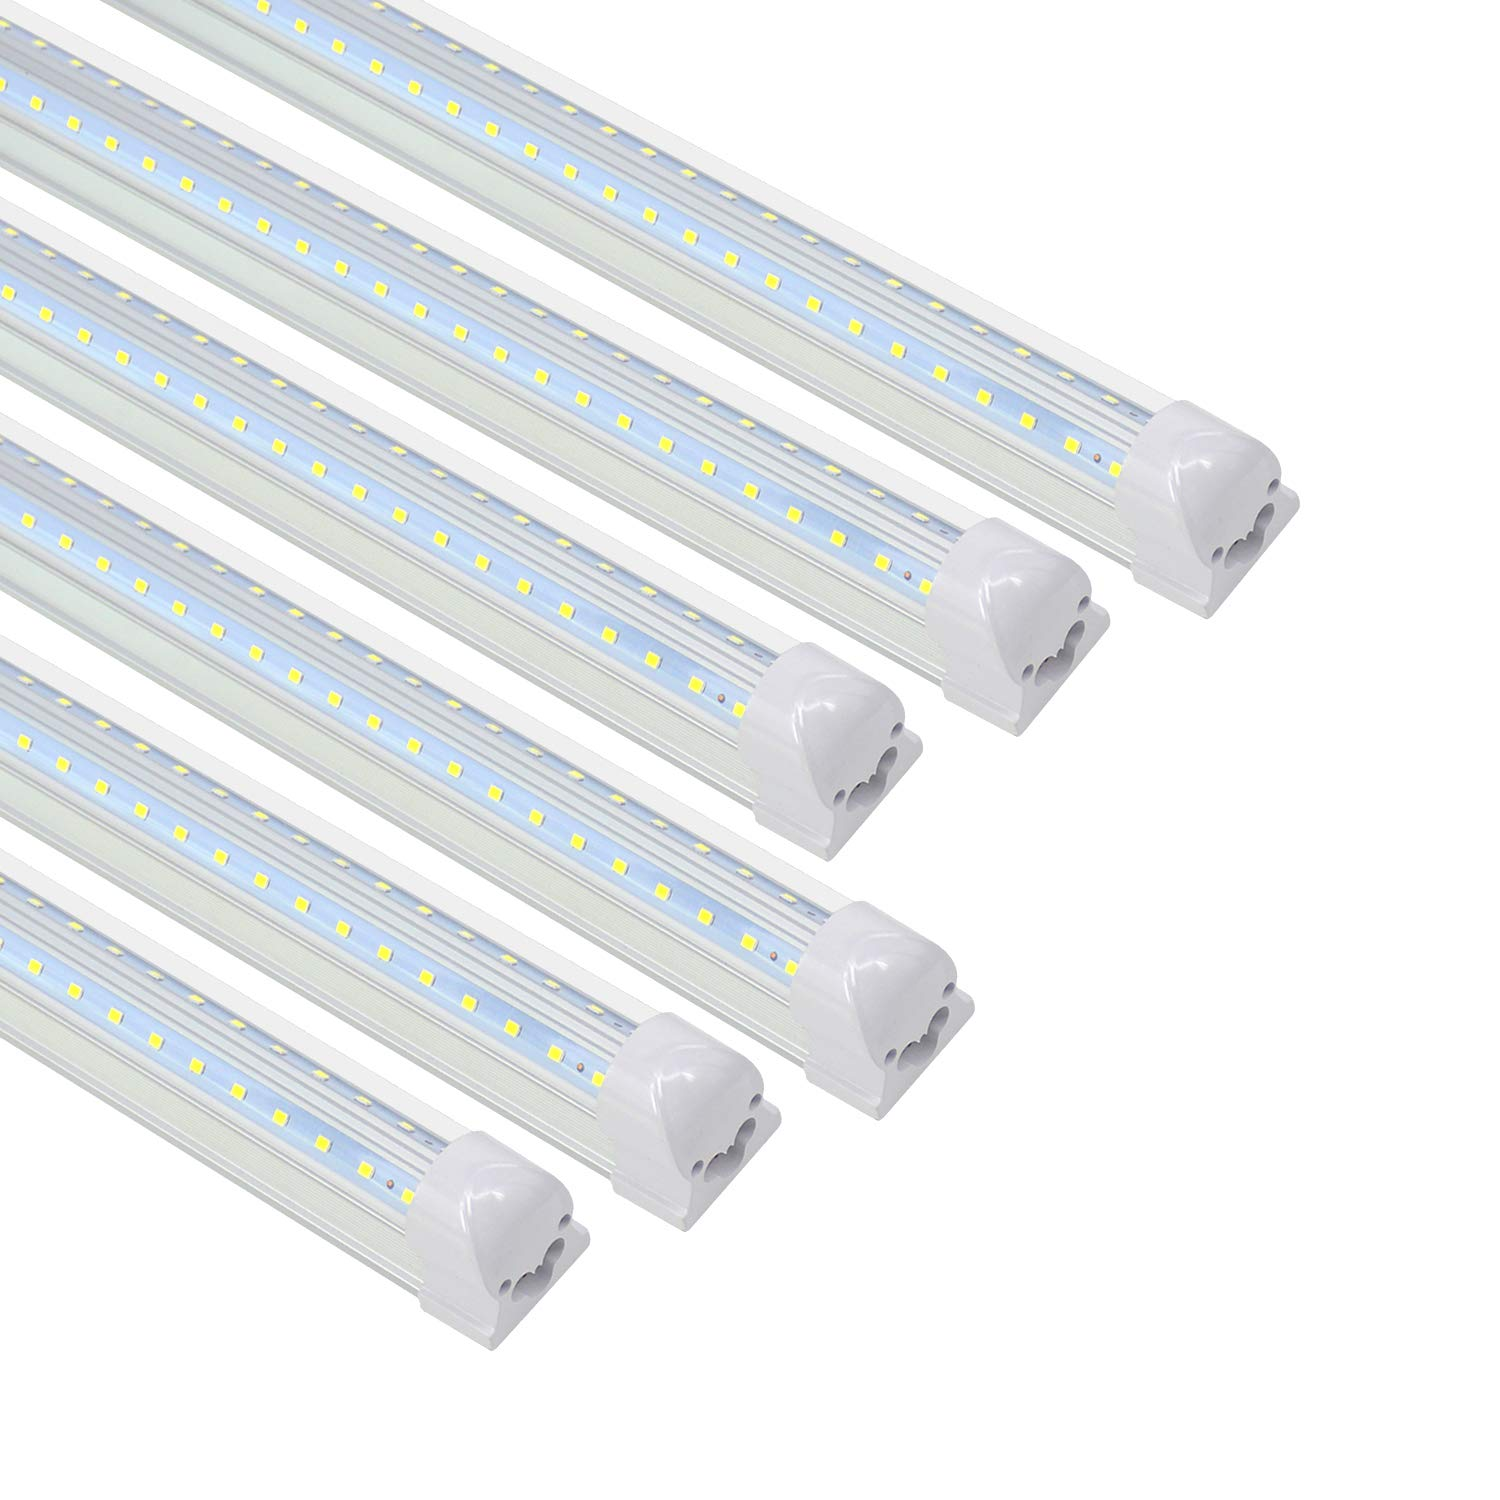 Cnsunway 4FT LED Shop Lights - V Shape T8 Integrated Tube Light Fixture, 5000K Daylight. 3360LM, 28W, LED Tube Light Replacement, Linkable Strip Ceiling Lights, Plug and Play, Clear, 6-Pack